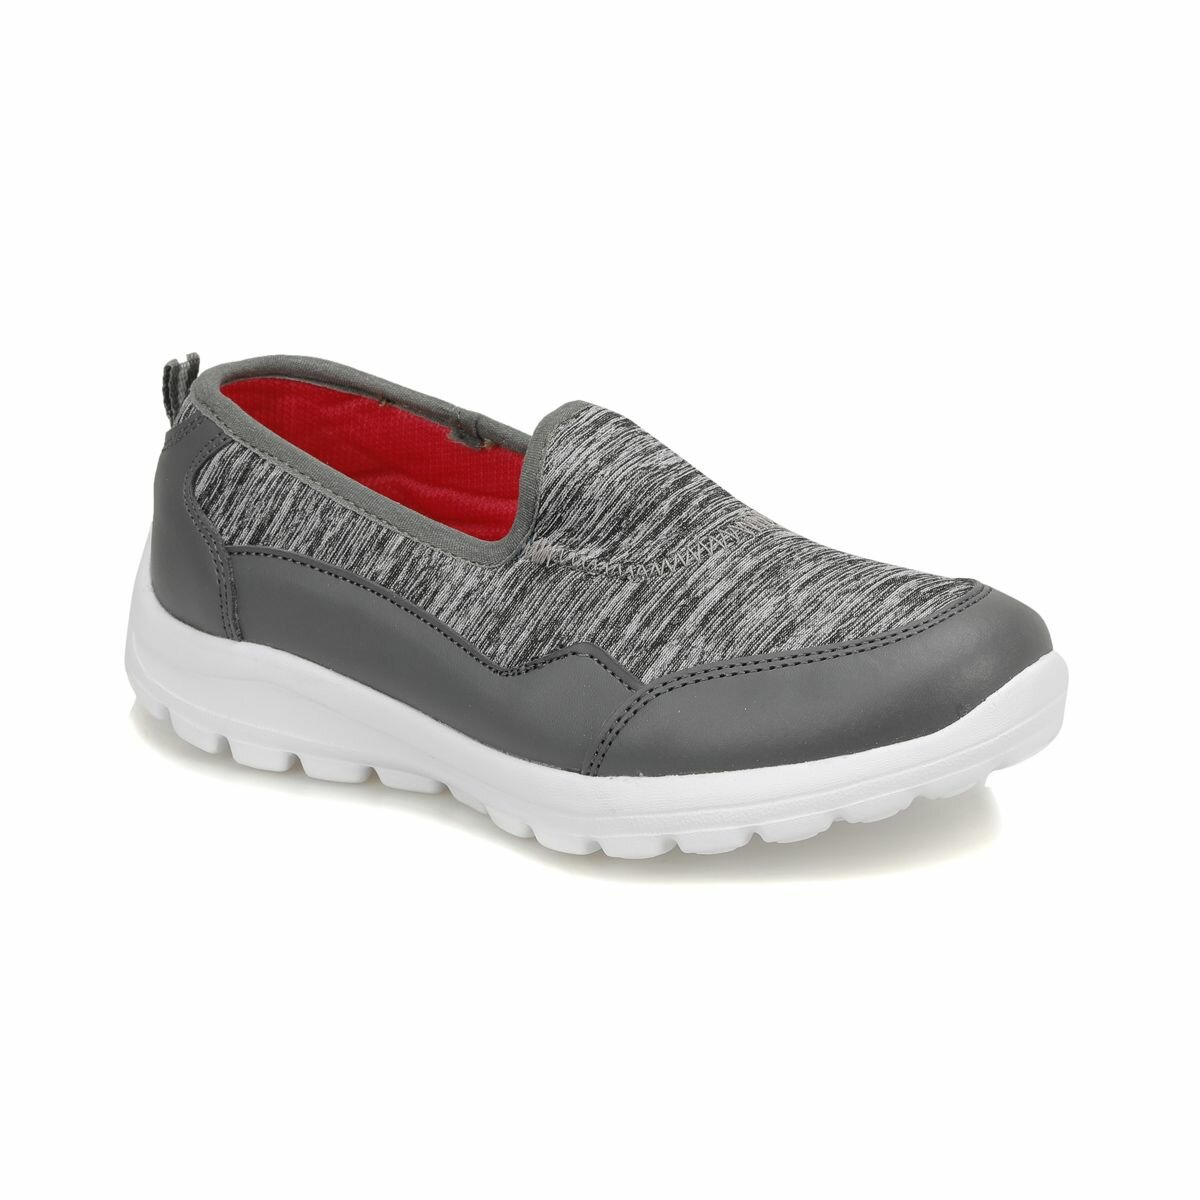 FLO ZION W Anthracite Women Sneaker Shoes Torex